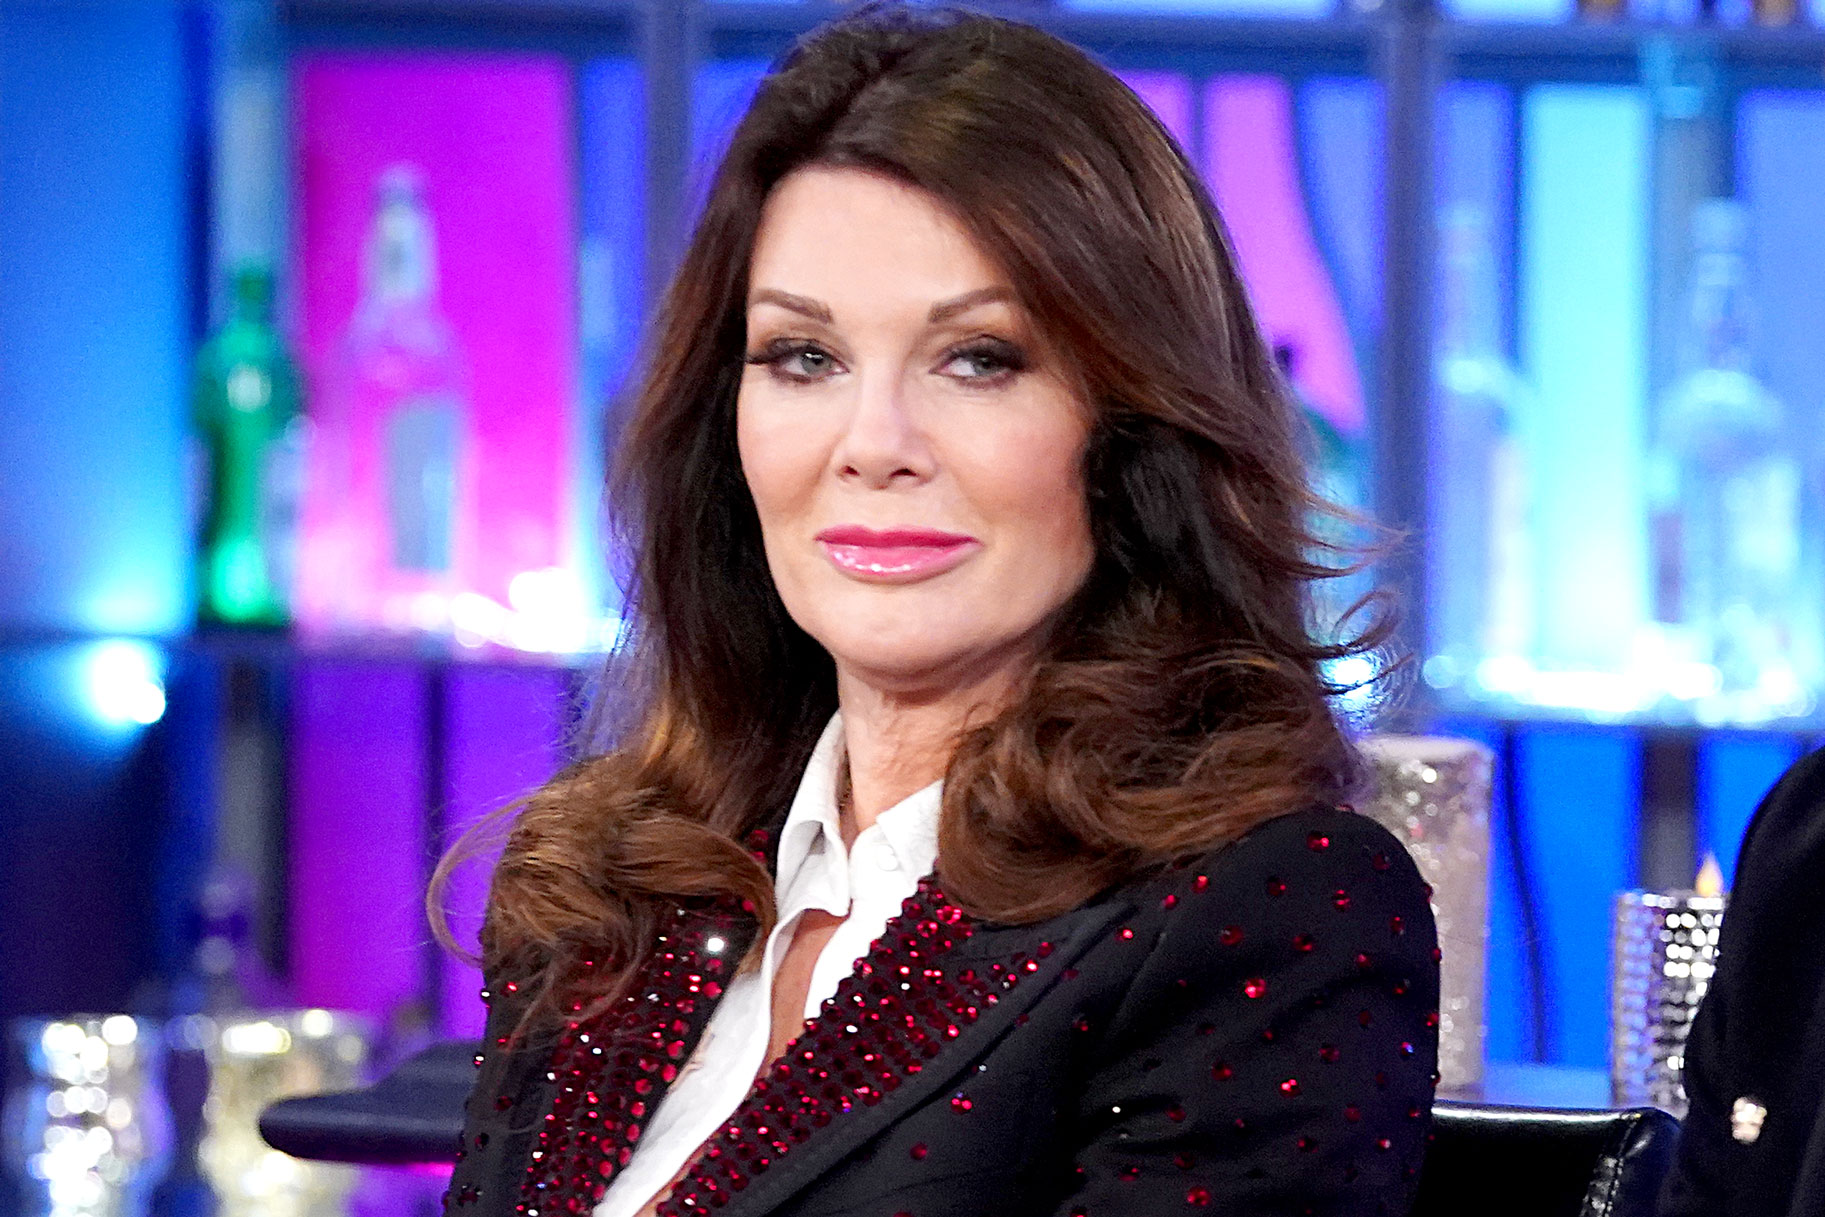 Lisa Vanderpump Business During Coronavirus